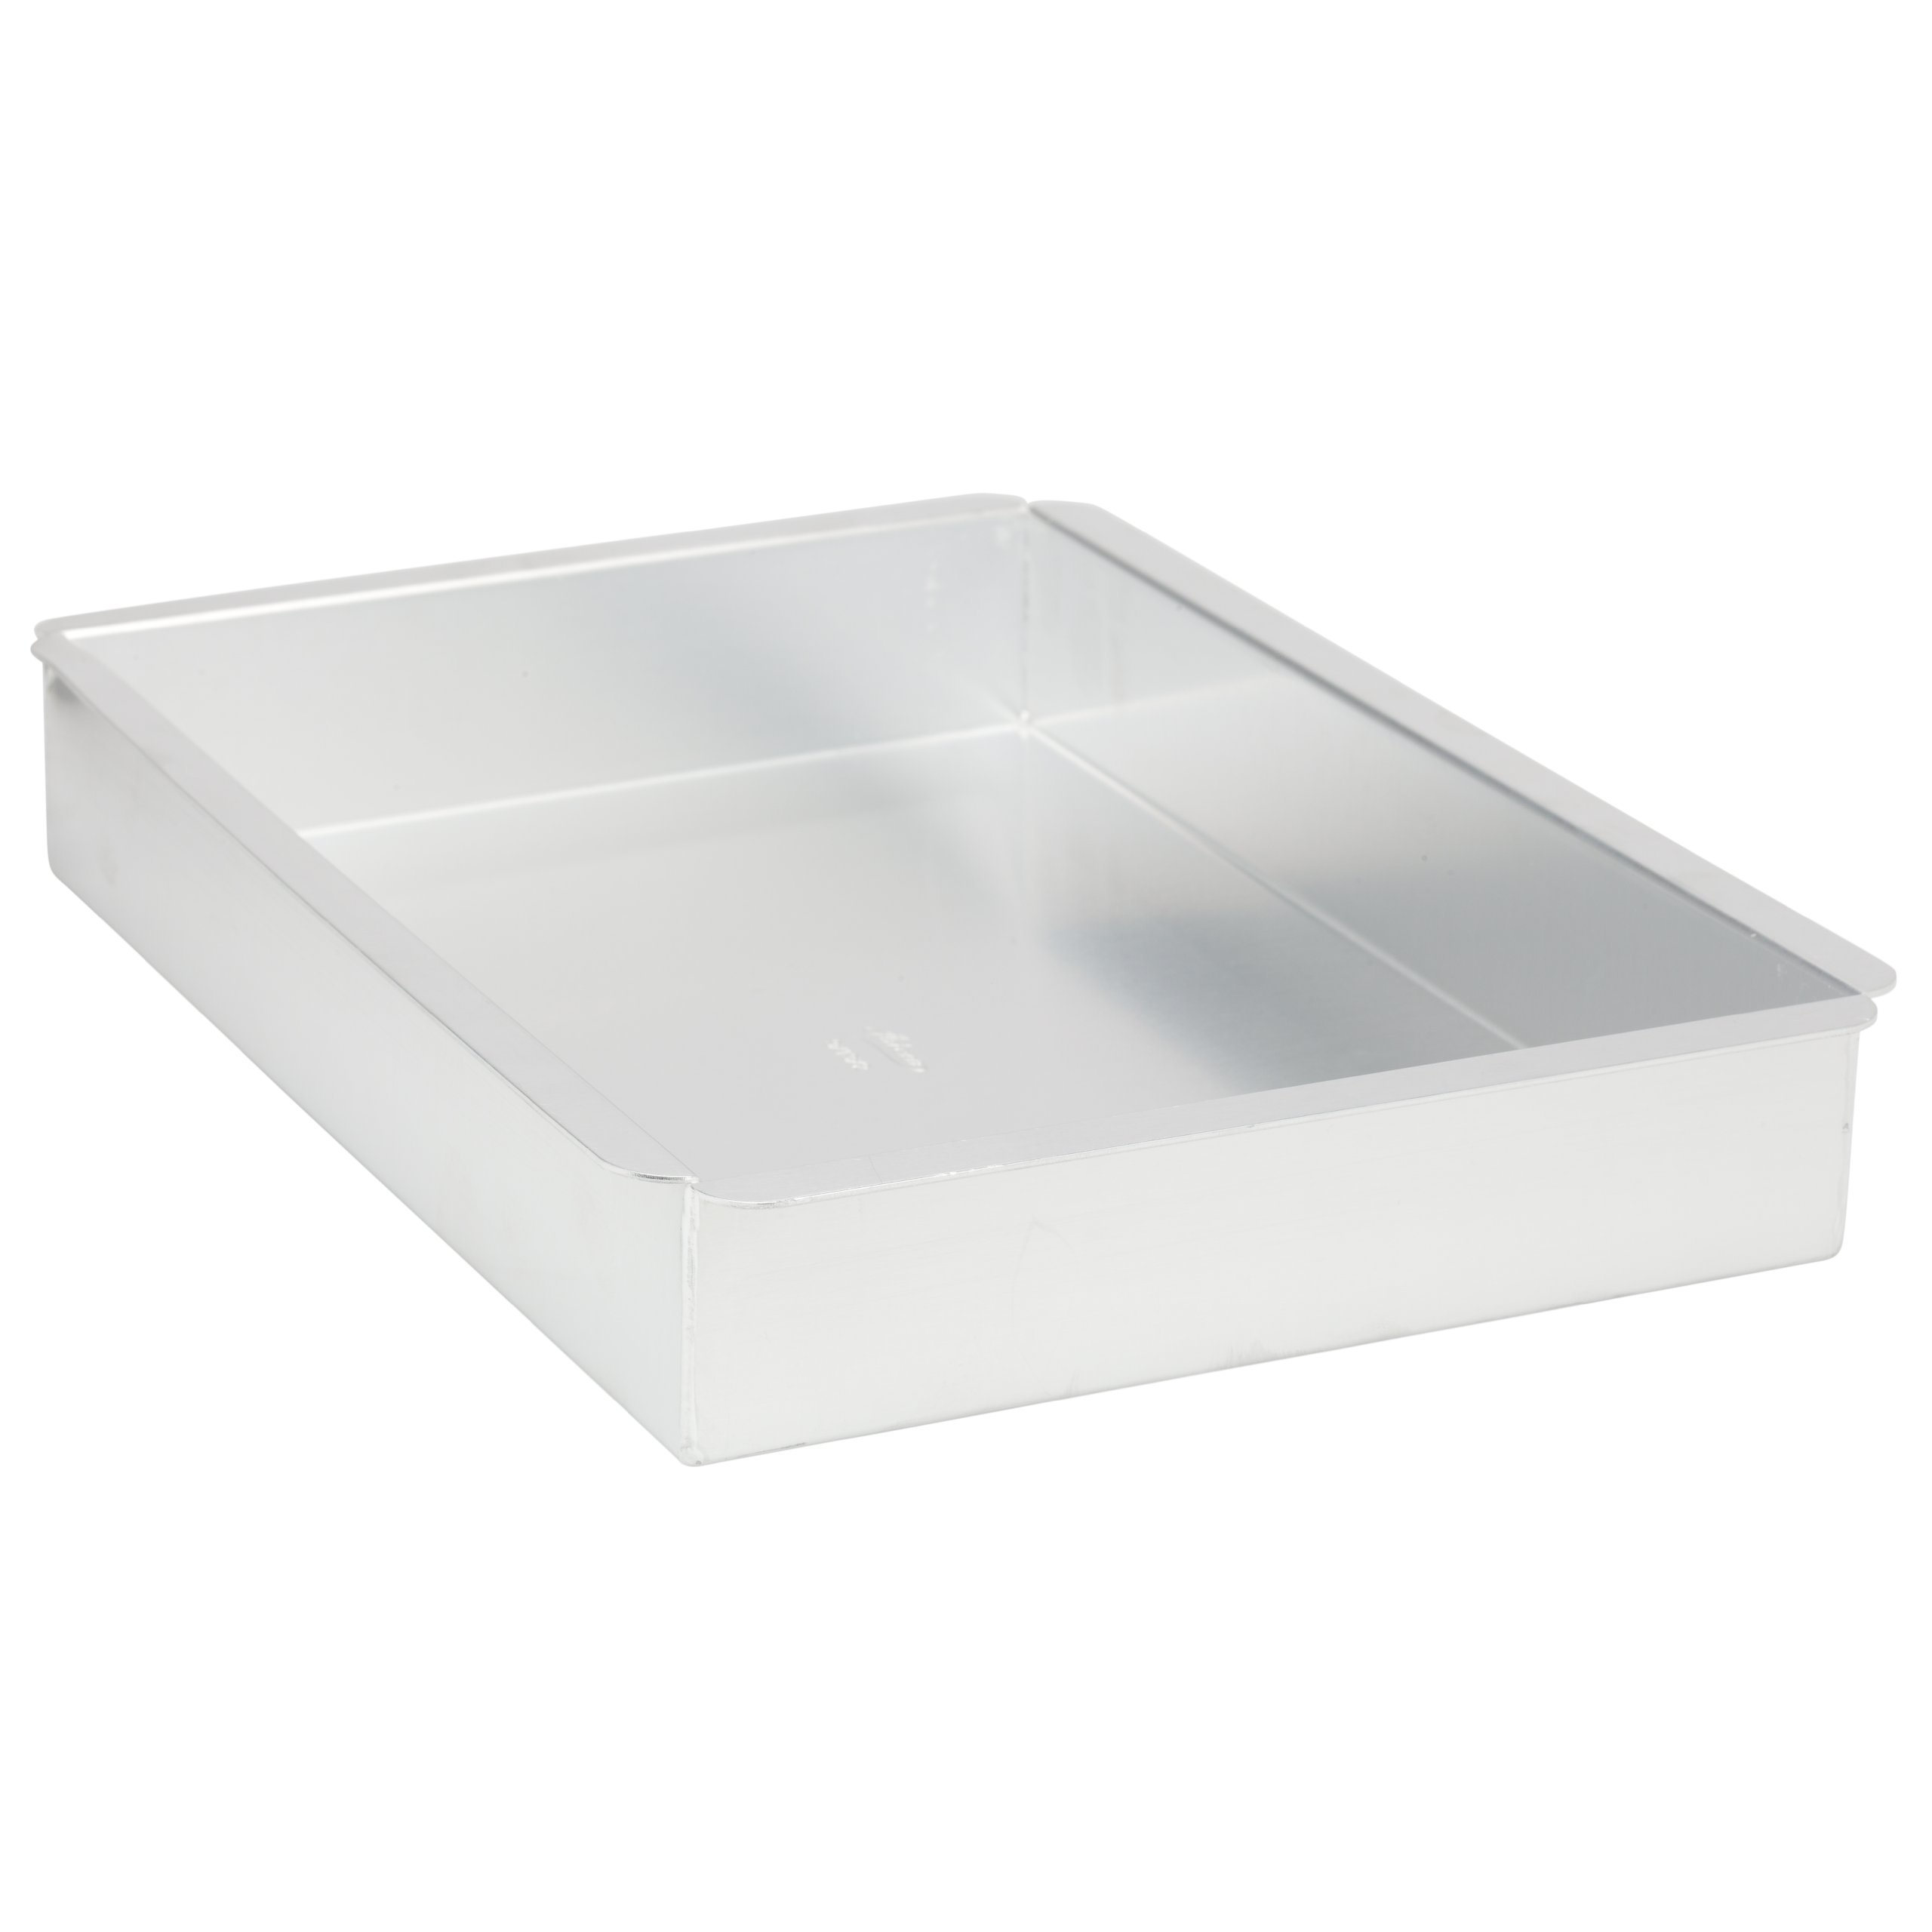 Ateco Aluminum Cake Pan, Rectangle, 9- by 13- by 2-Inches